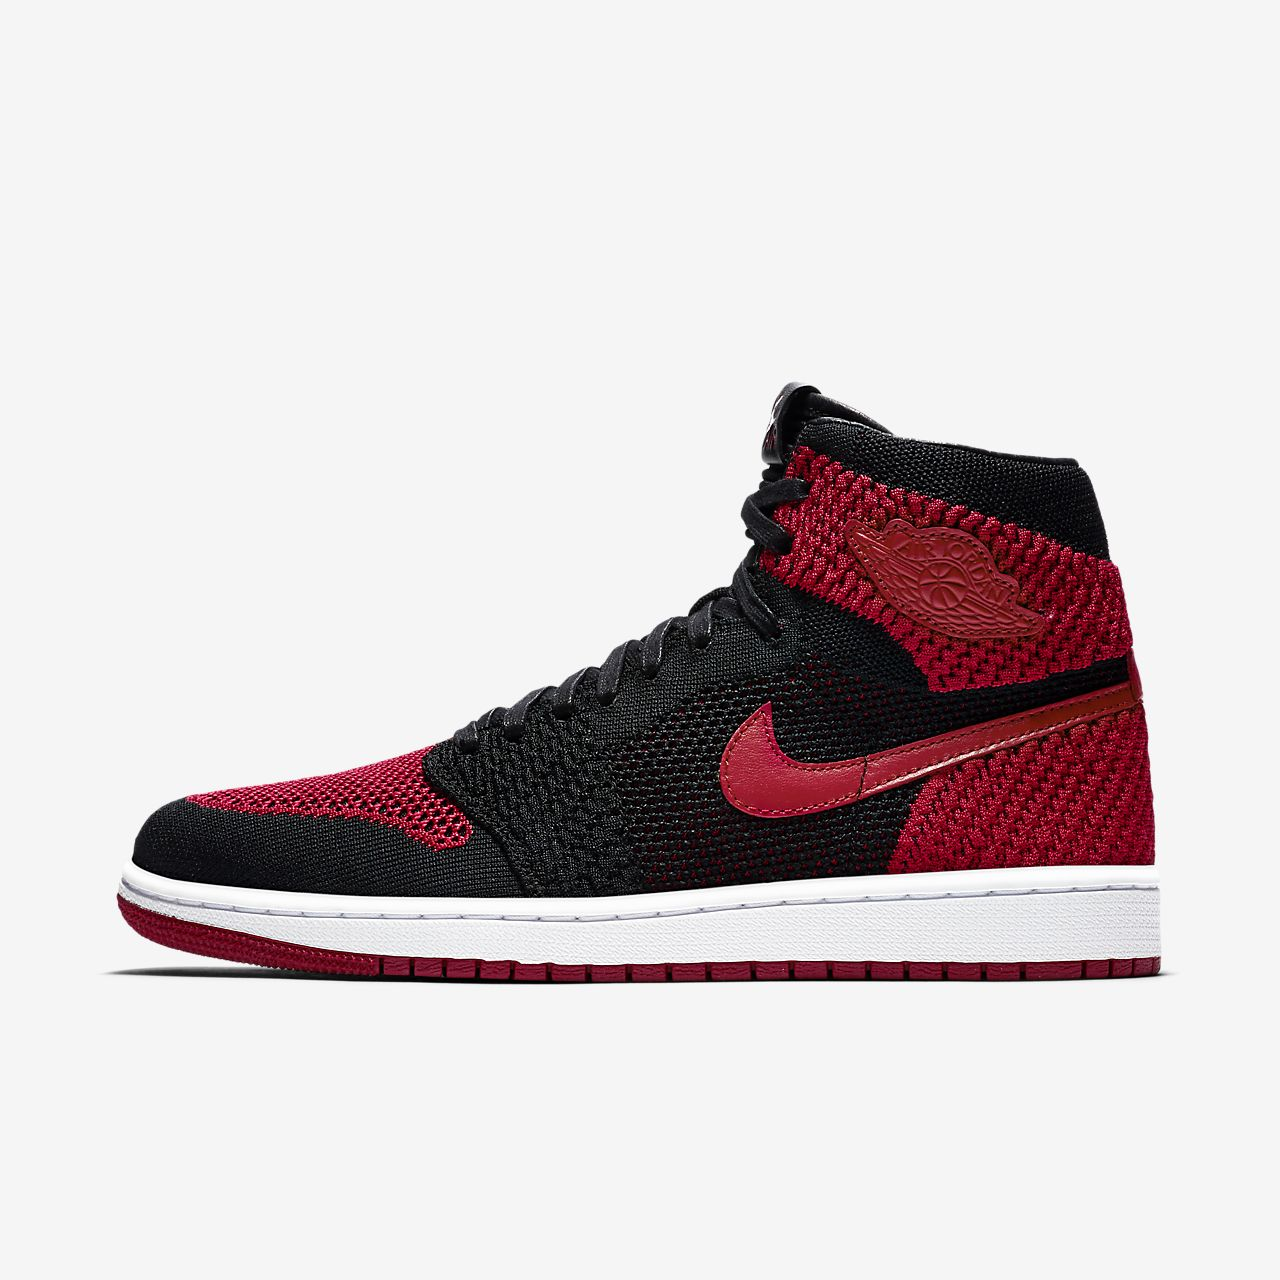 newest collection 2c21c 3233f ... coupon code for air jordan 1 retro high flyknit mens shoe fa730 ae83e